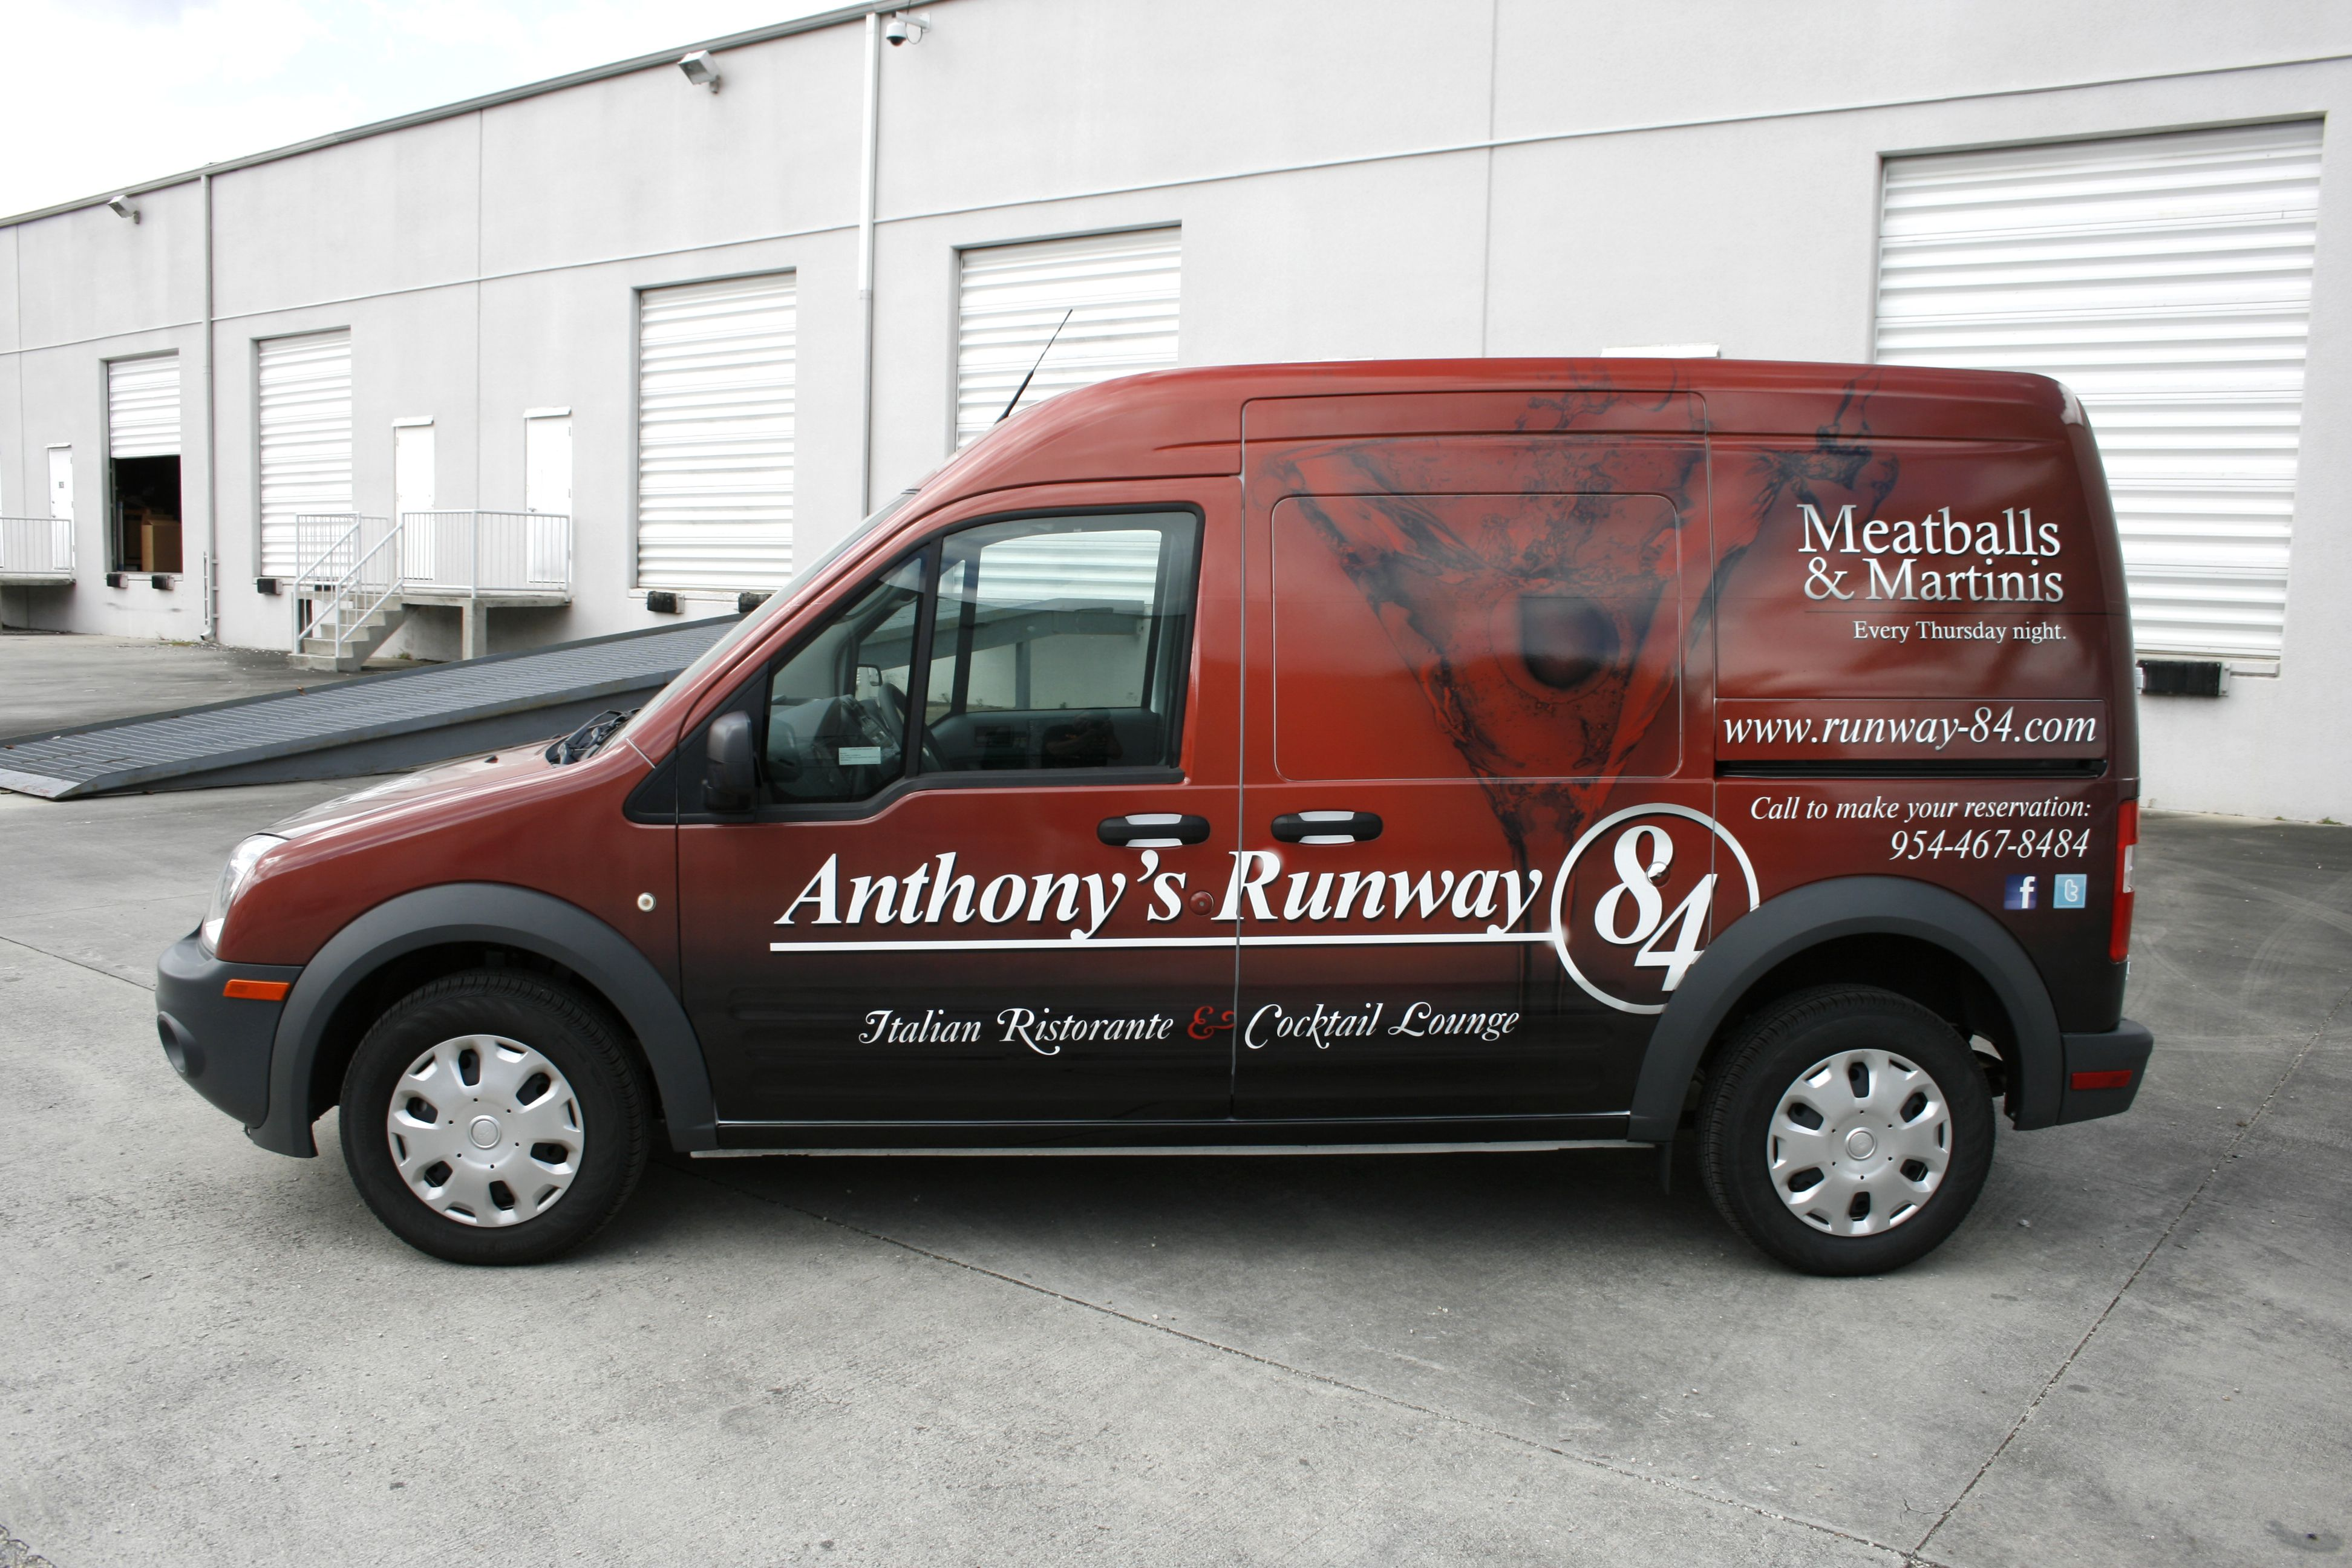 Ford transit connect 3m vinyl vehicle wrap davie florida anthony s runway 84 restaurant http